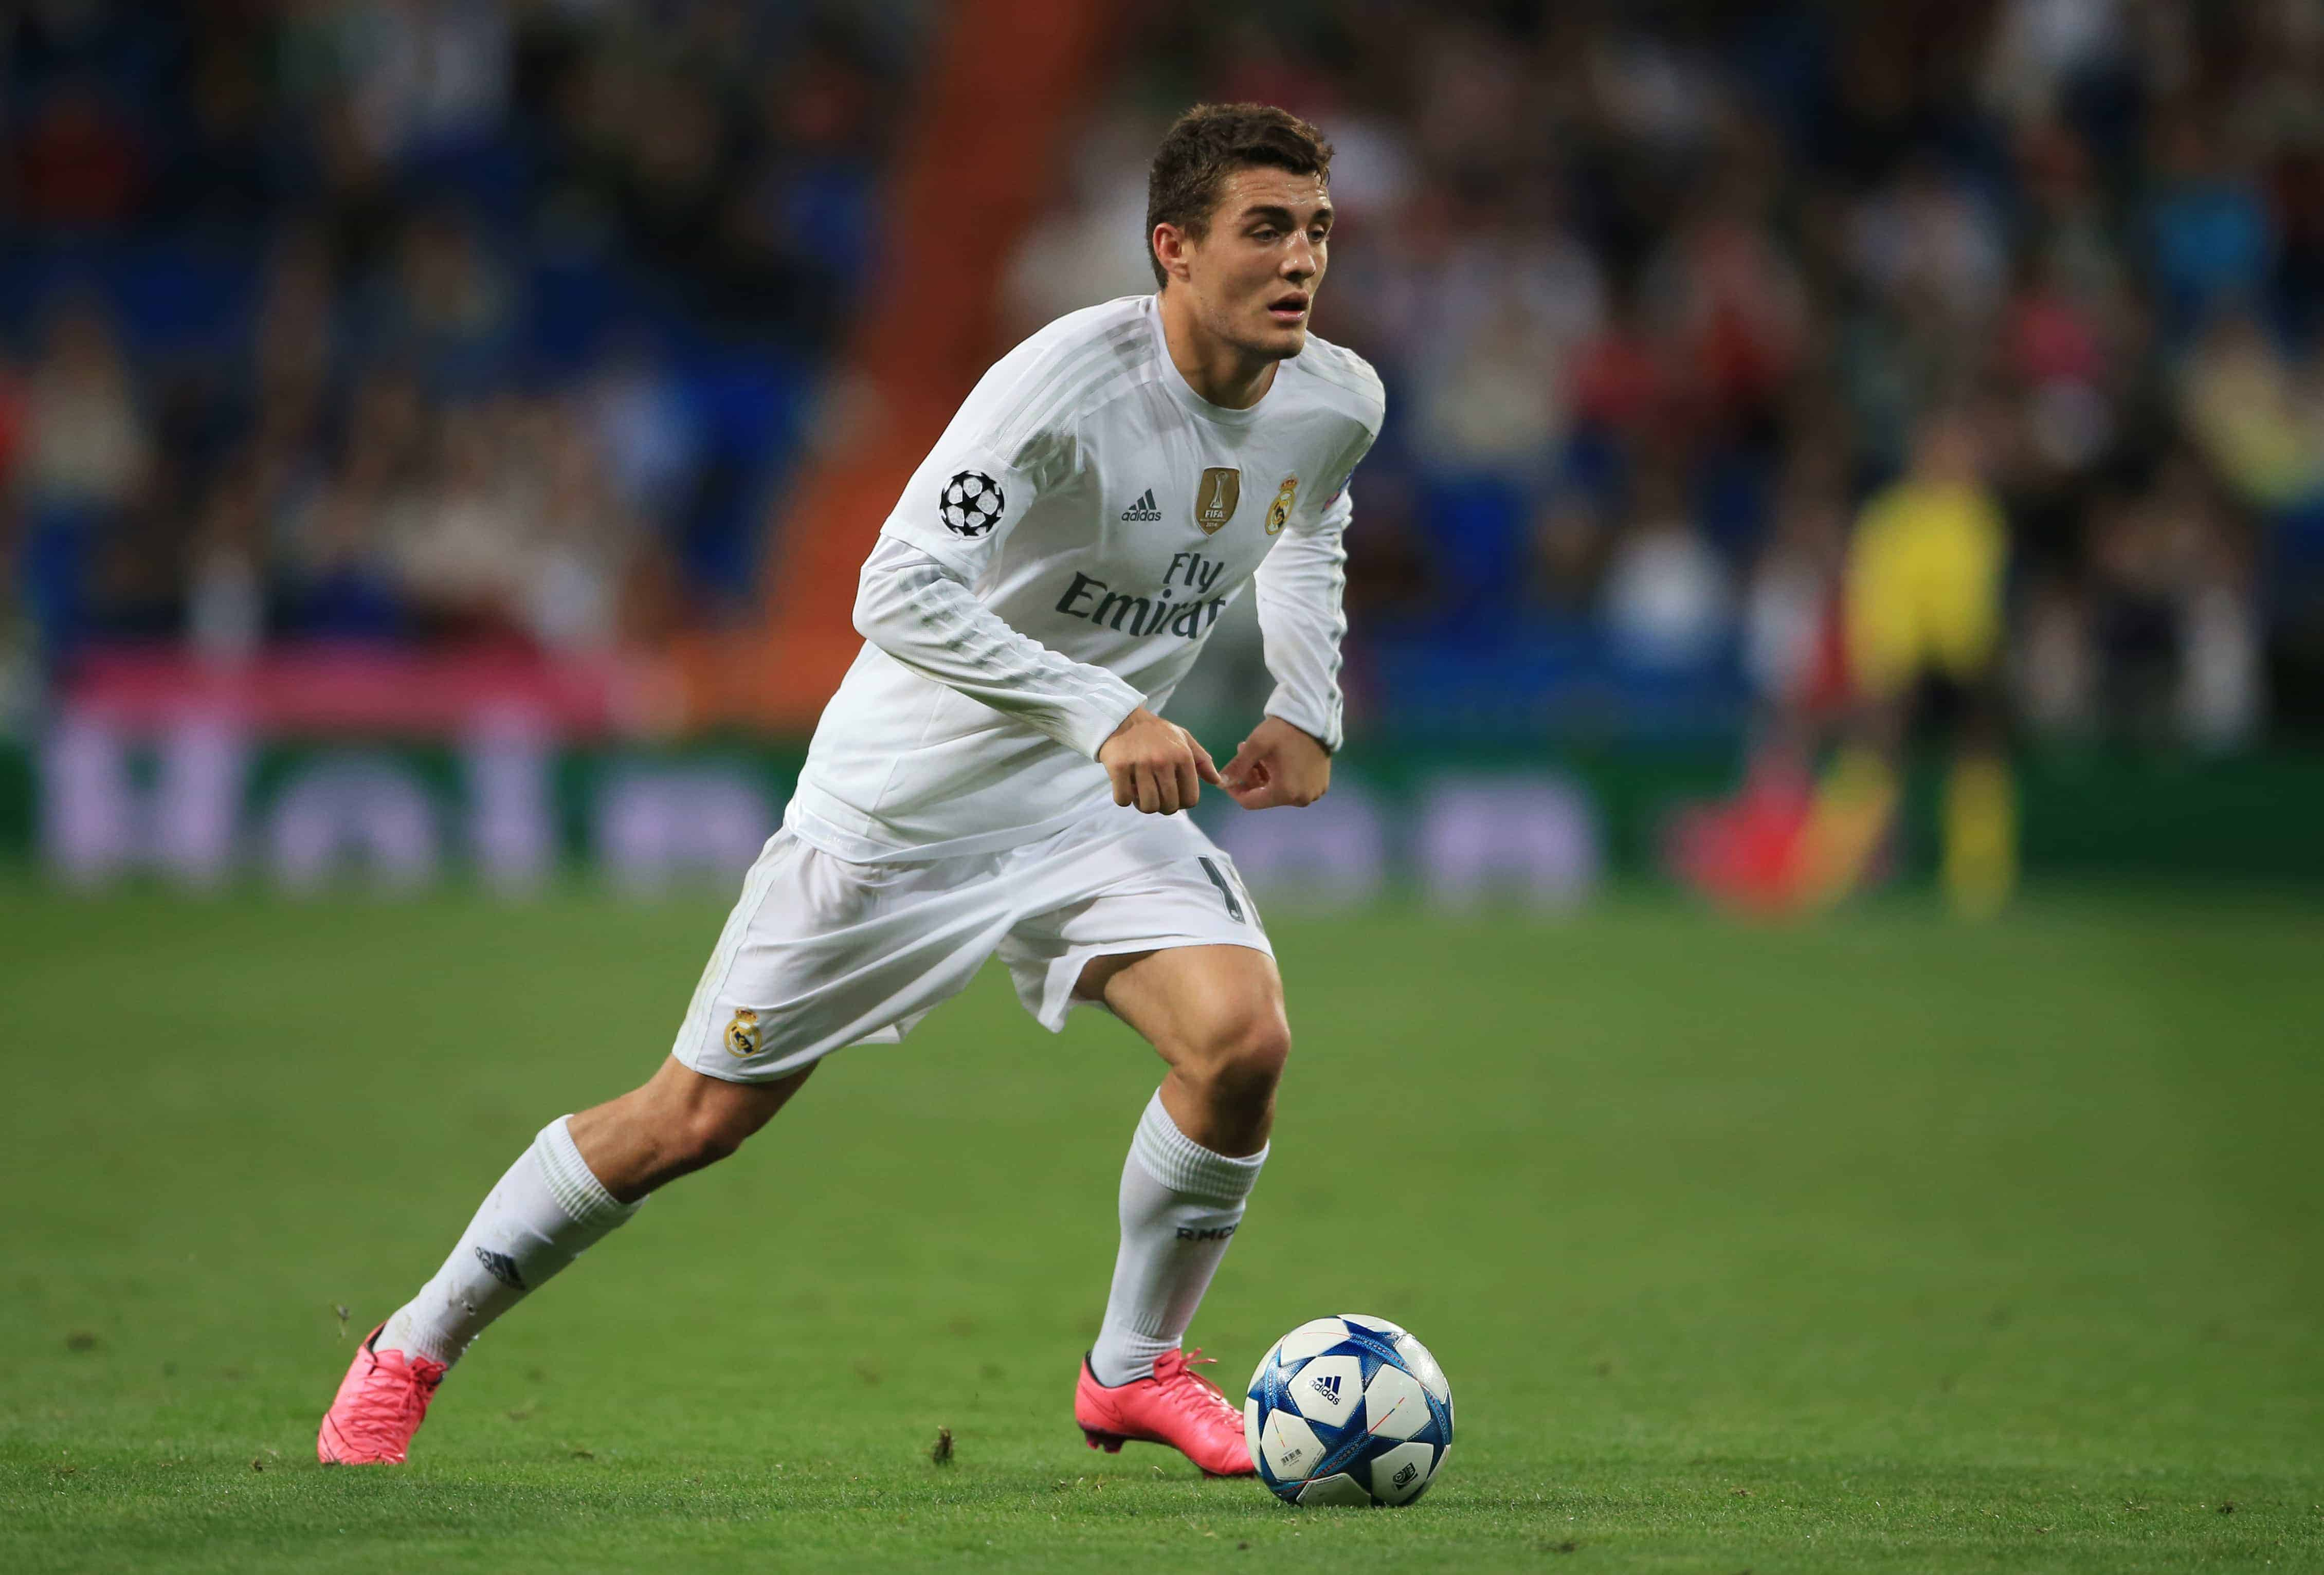 Mateo Kovacic Croatian Real Madrid Football Player